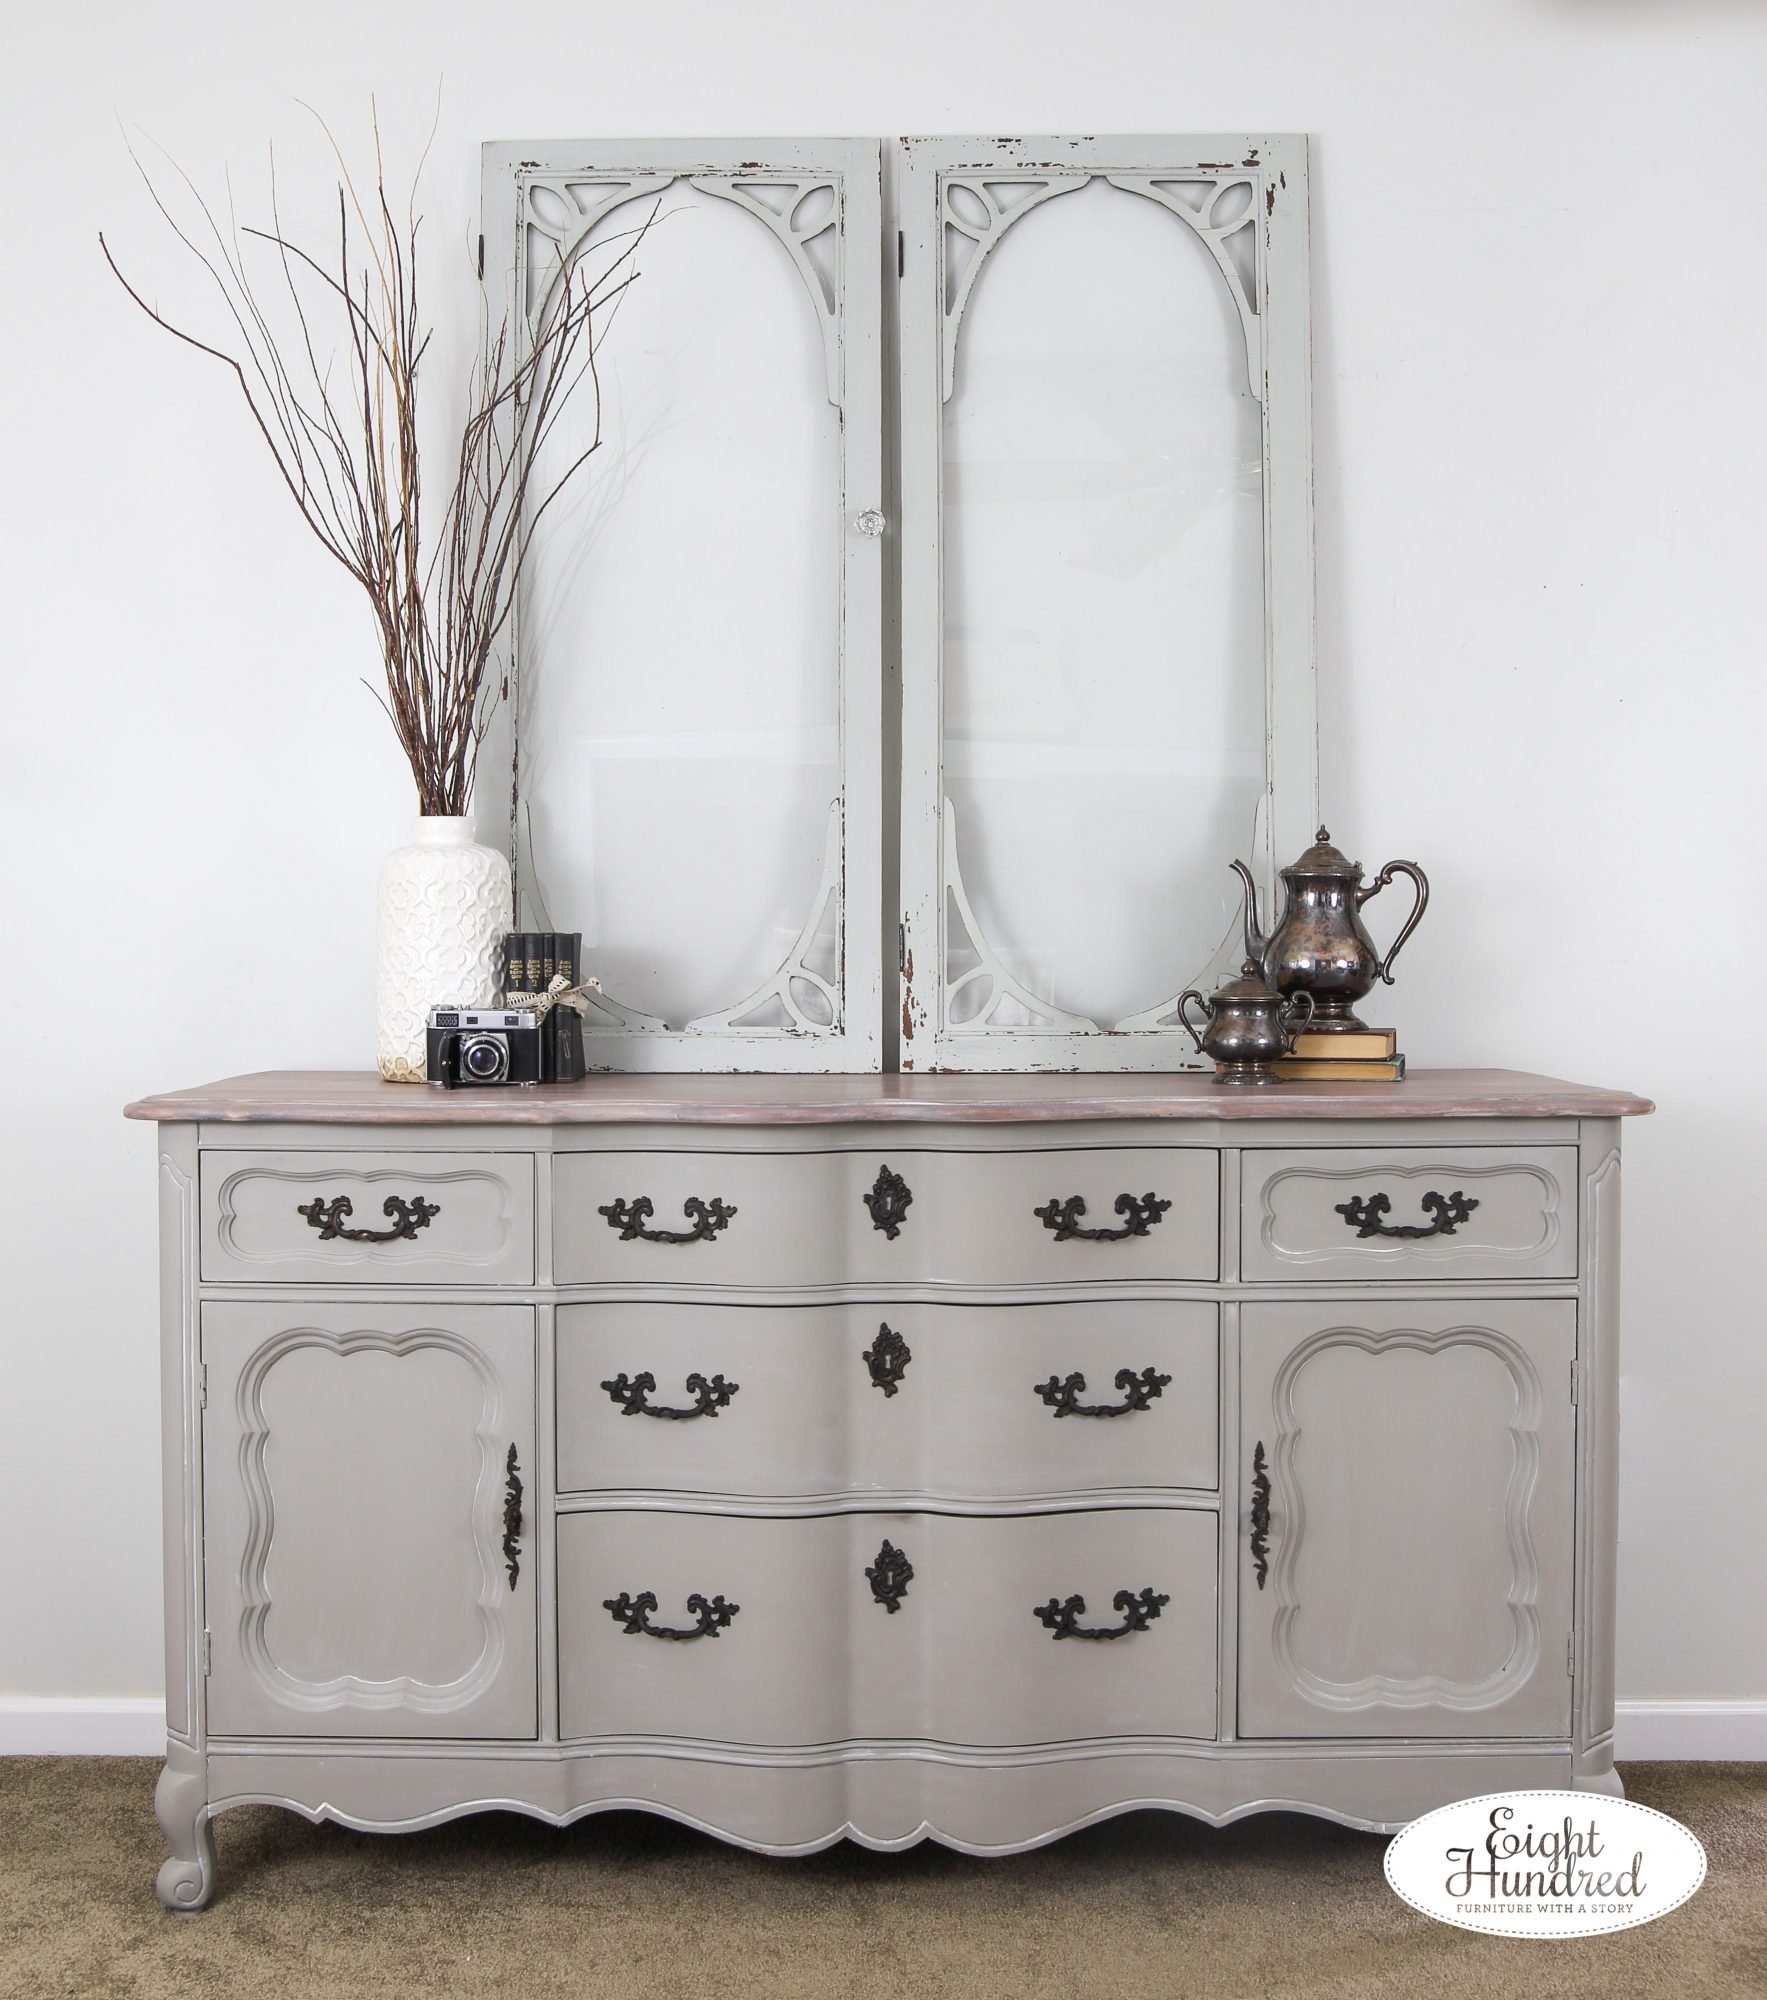 High performance topcoat in satin, whitewash glaze effects, graystone water based wood stain, white wax by miss mustard seed, french provincial buffet, eight hundred furniture